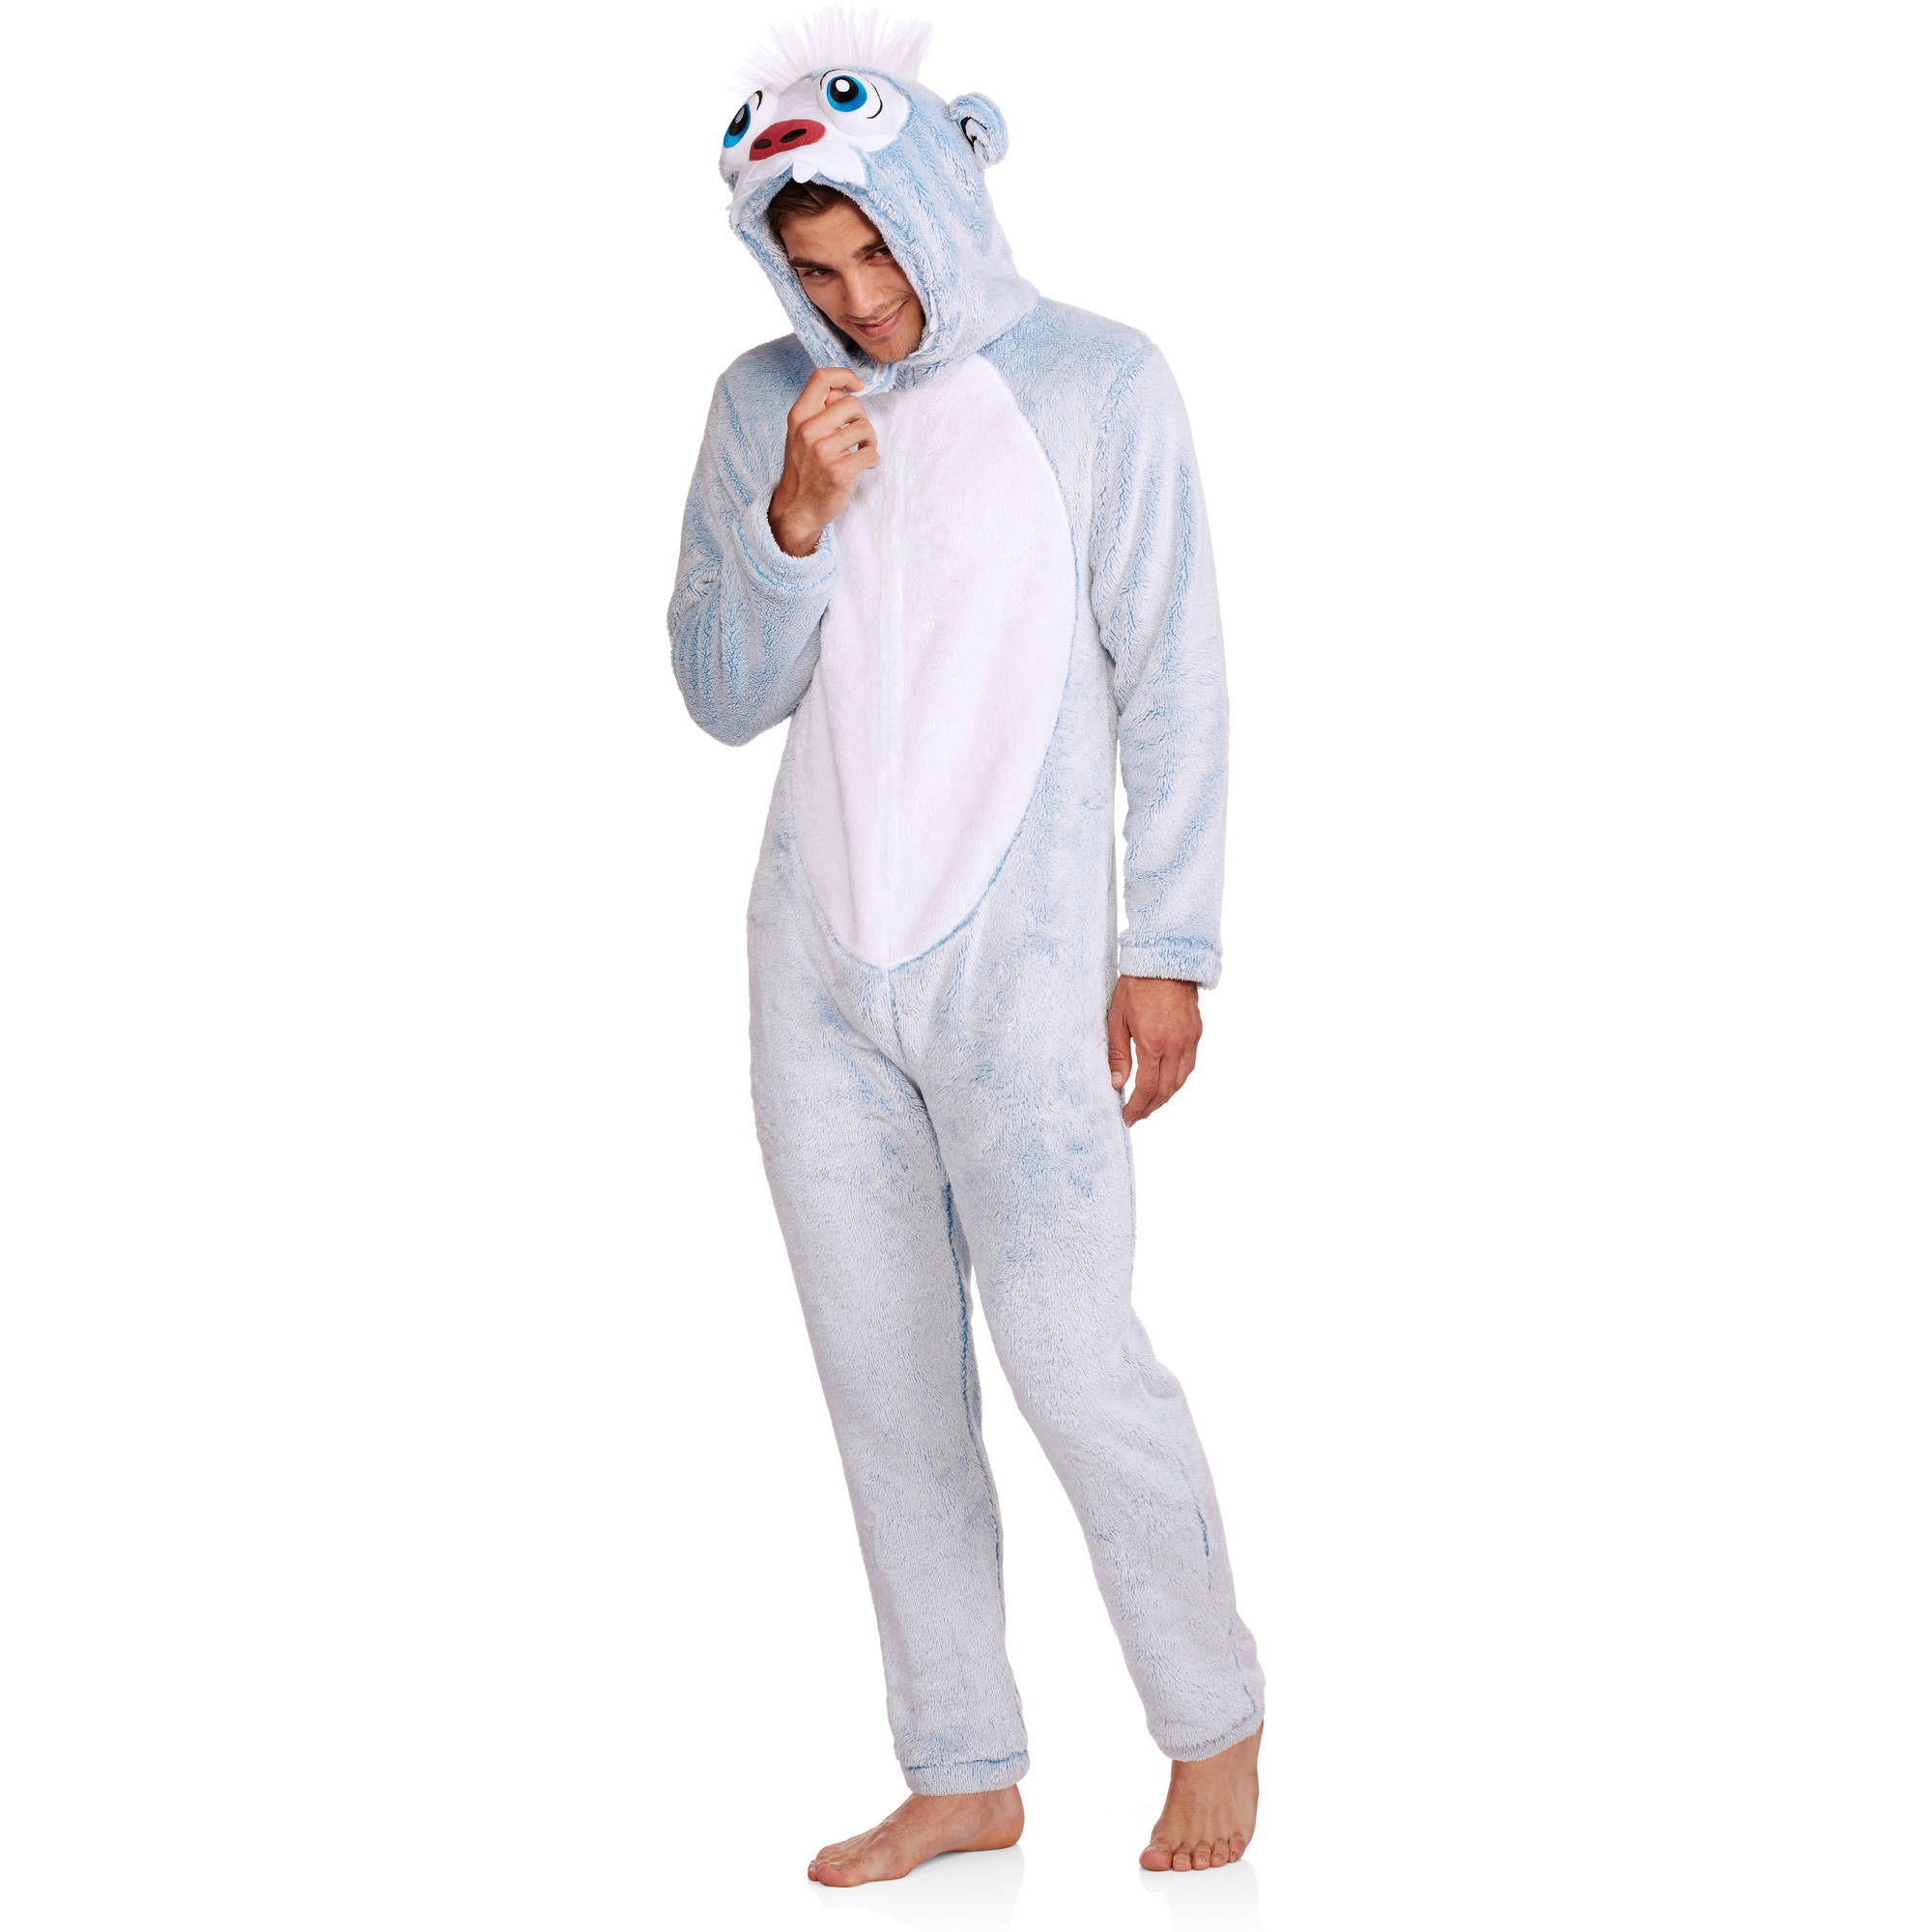 Big Men's Onesie Yetti Snowman Union Suit